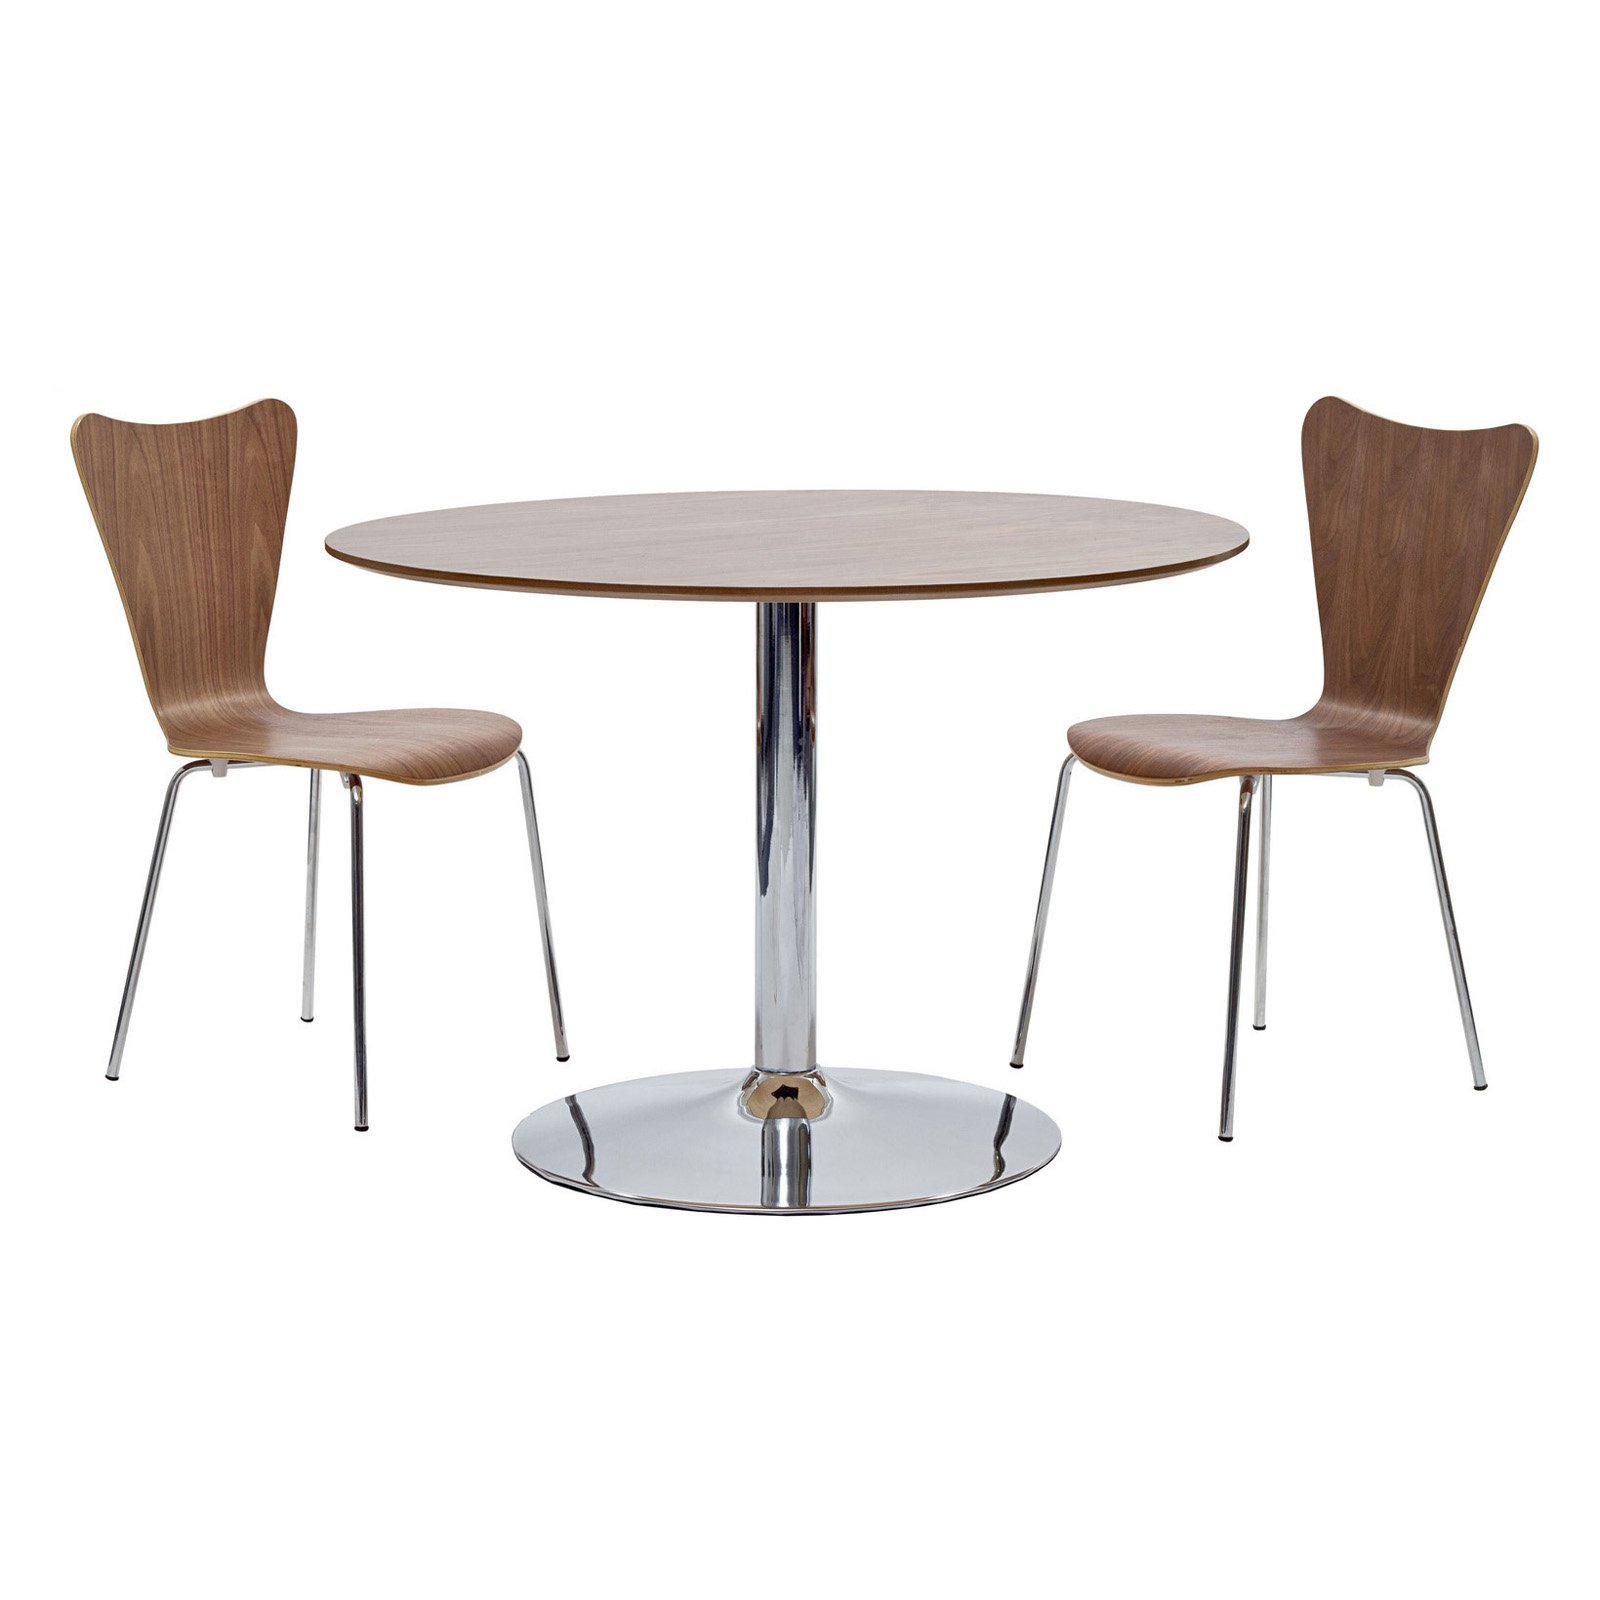 remarkable accent chairs side table set russian excellent nap home formal appetizer worksheet informal glasses basic train and for setting ideas restaurant definition weddings